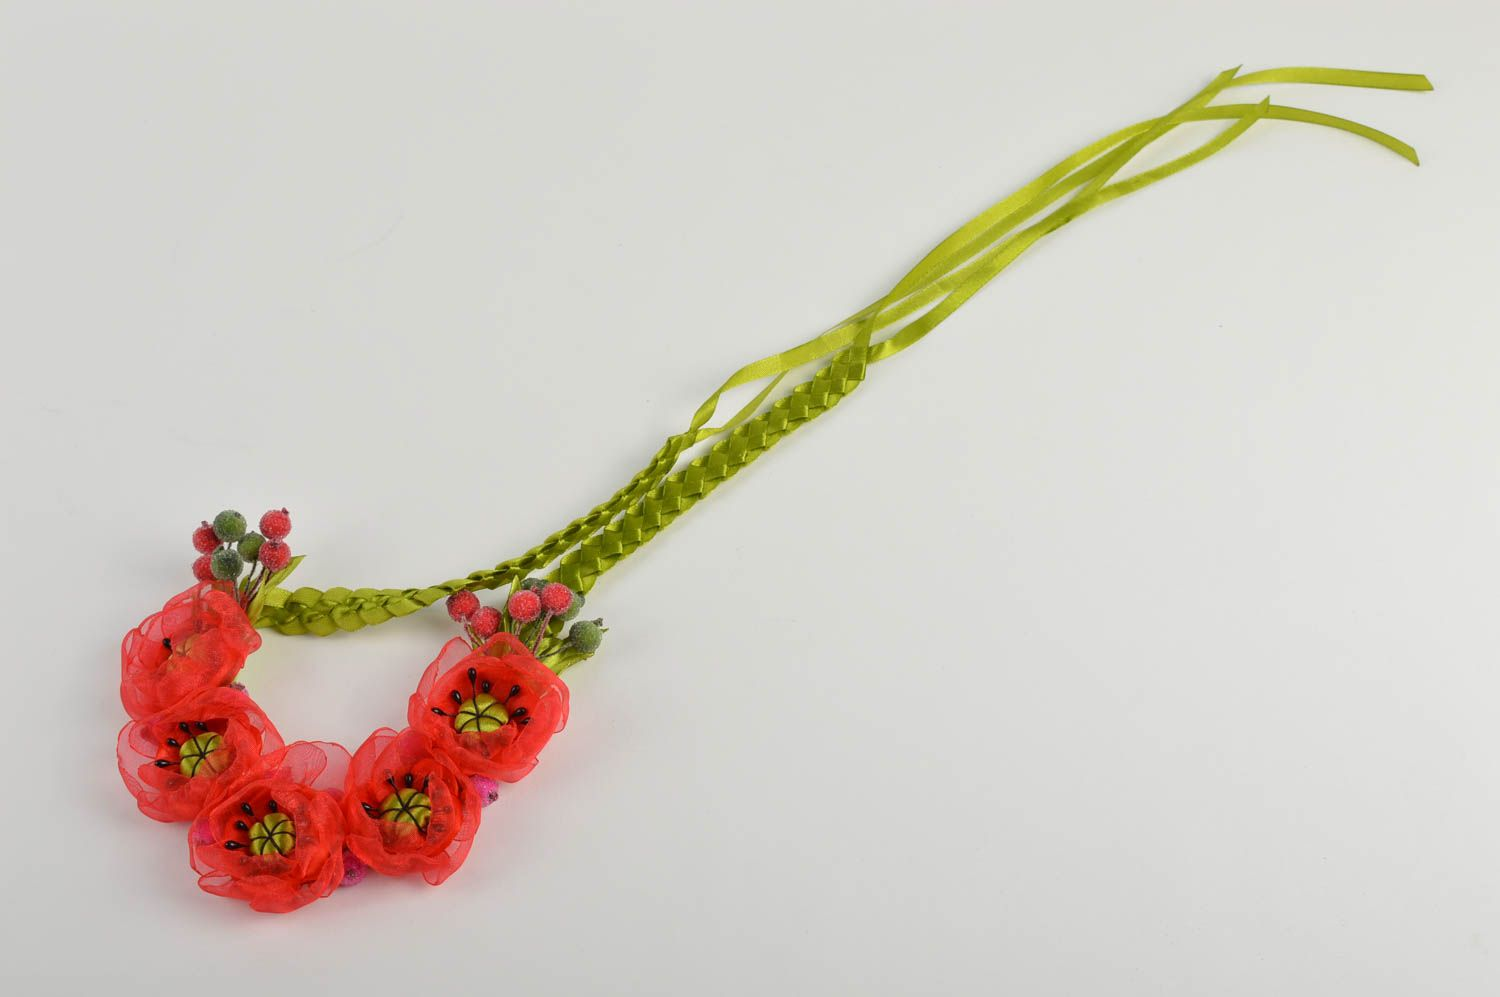 Unusual handmade textile necklace costume jewelry fashion accessories gift ideas photo 3